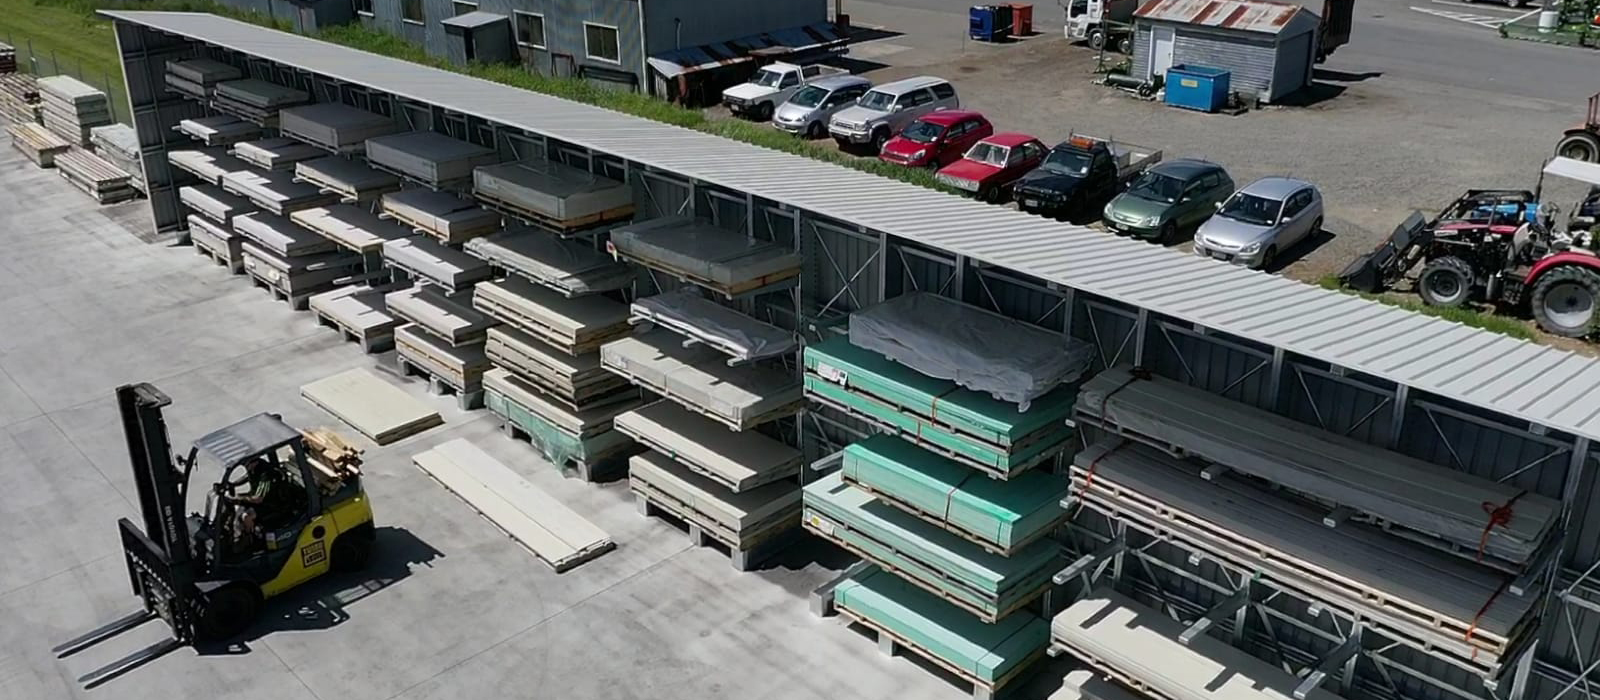 TUMU iTM Trade Store FItout, Cantilever Racking, Timber Storage, Yard Racking, iRS, Integrated Rack Structure, Roof Structure, Dry Storage